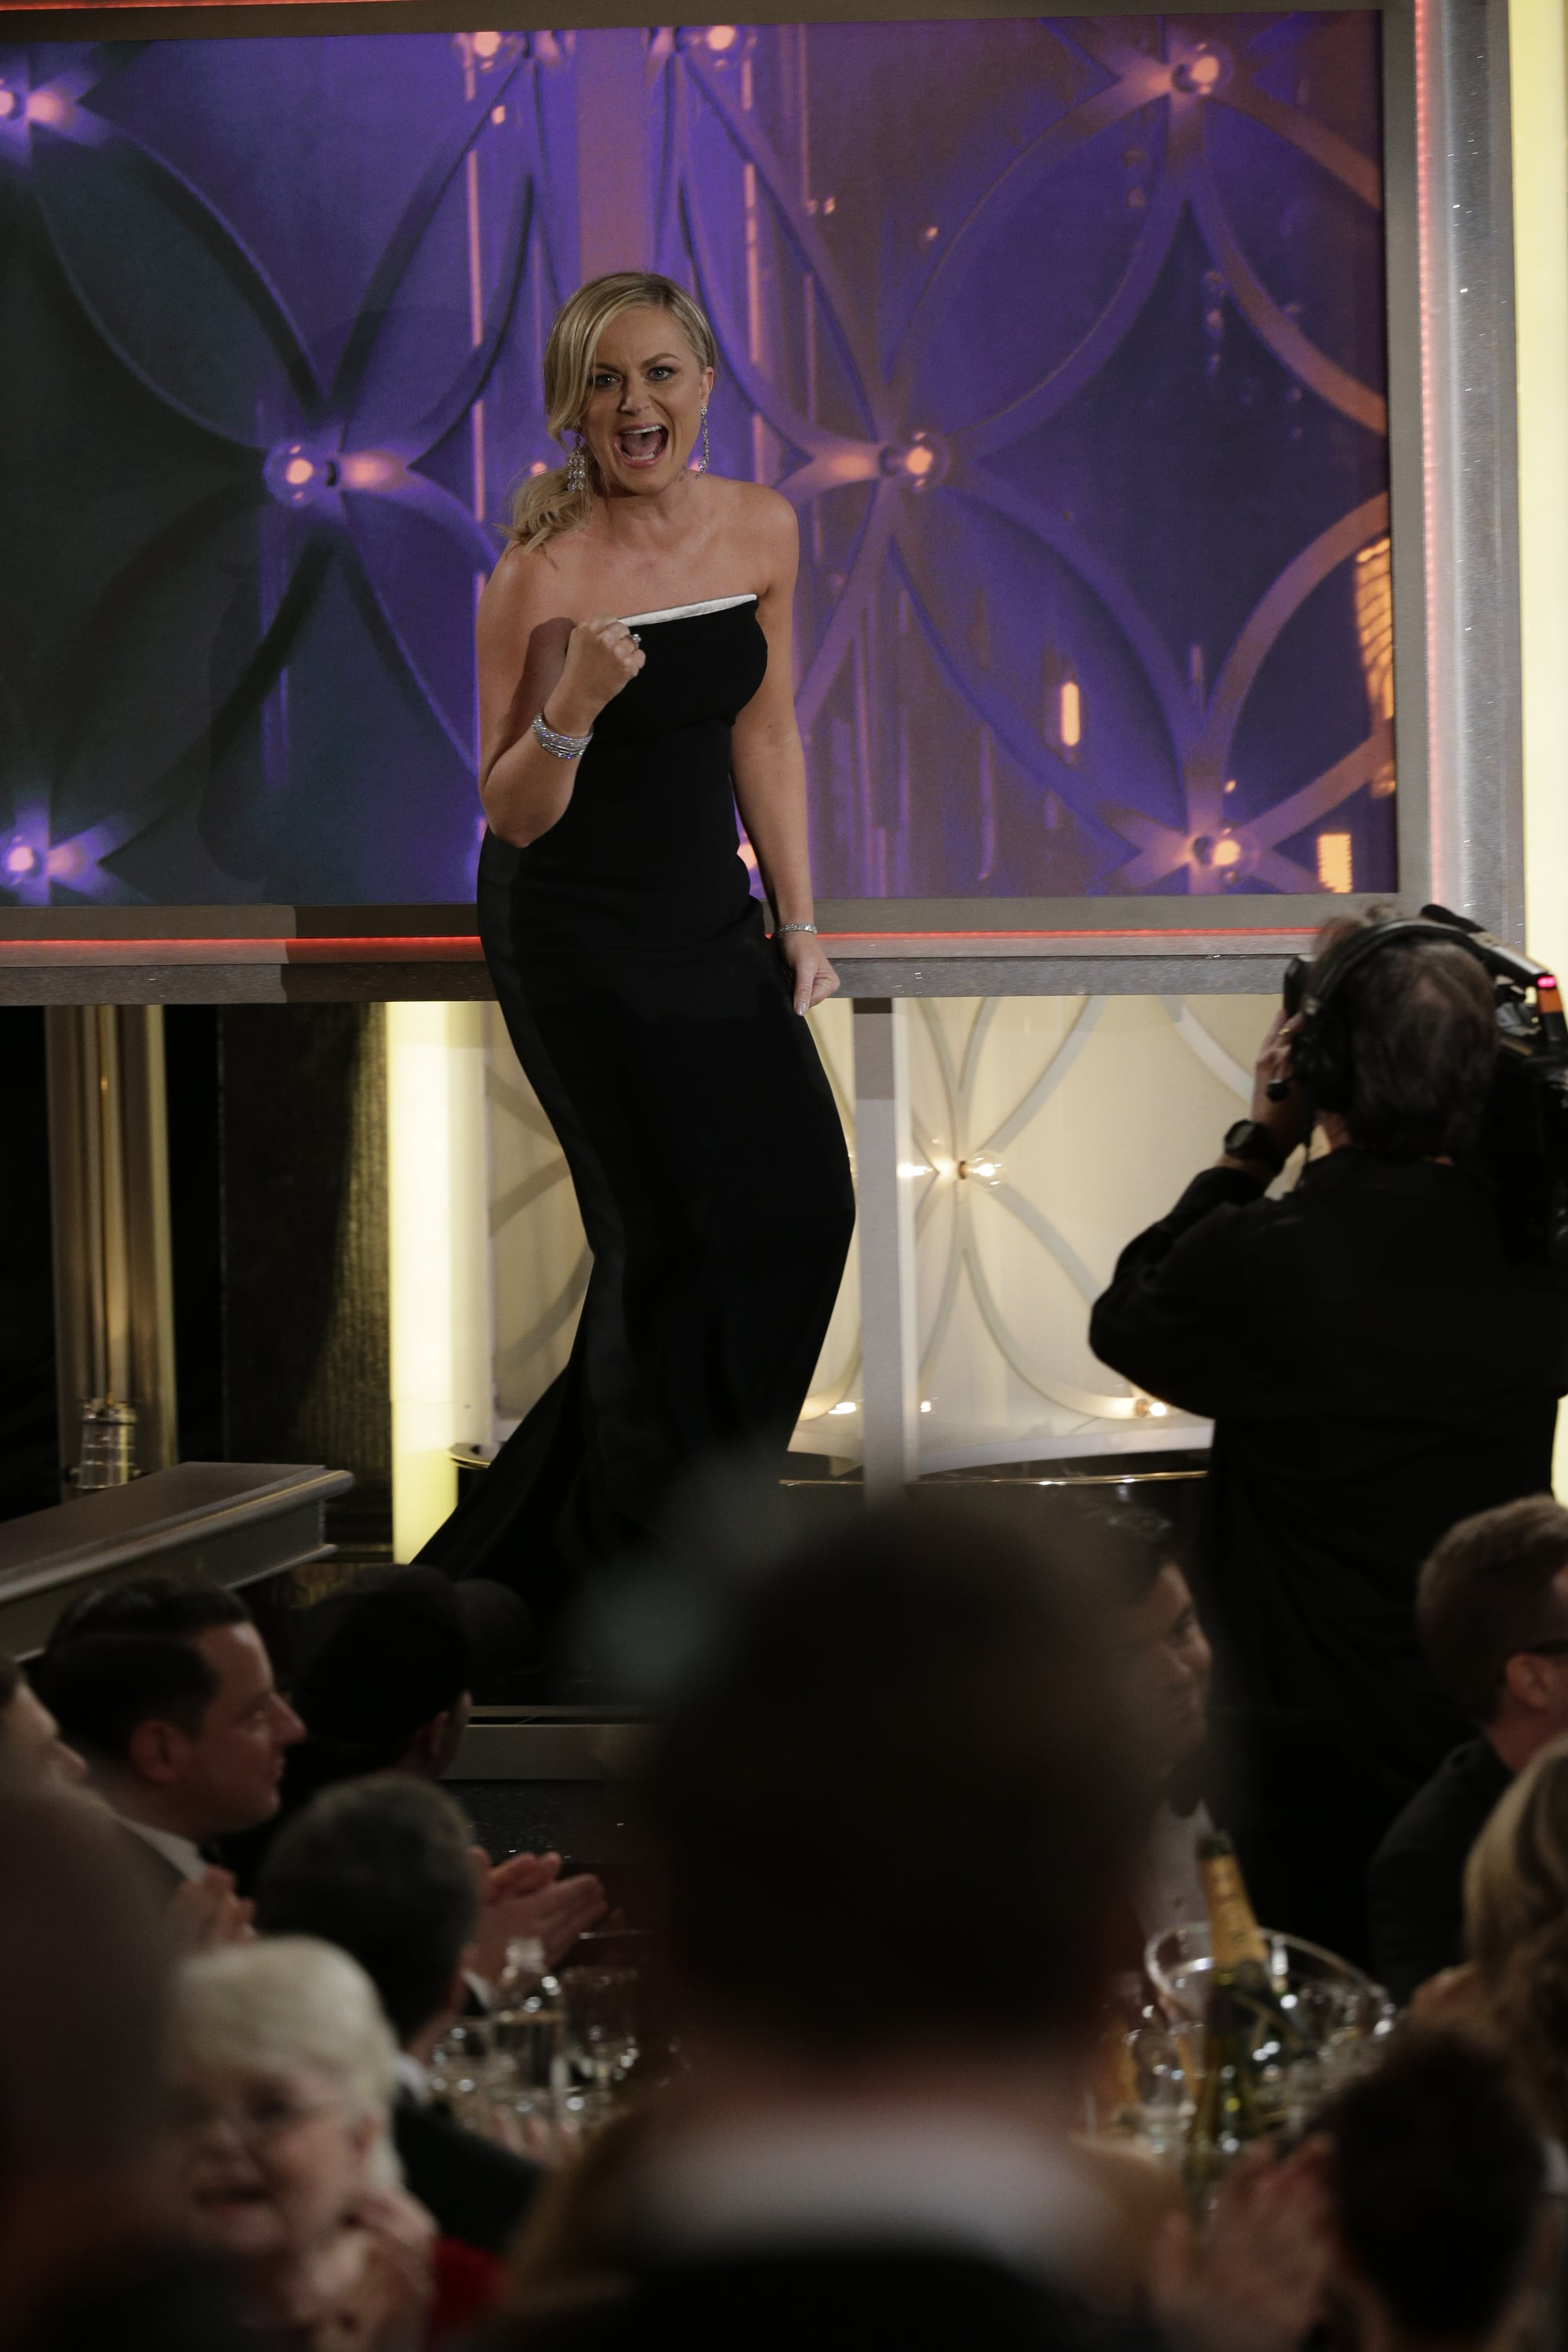 Amy Poehler's animated walk to the stage to accept her Golden Globe Award for best actress in Parks and Recreation was a moment to remember.